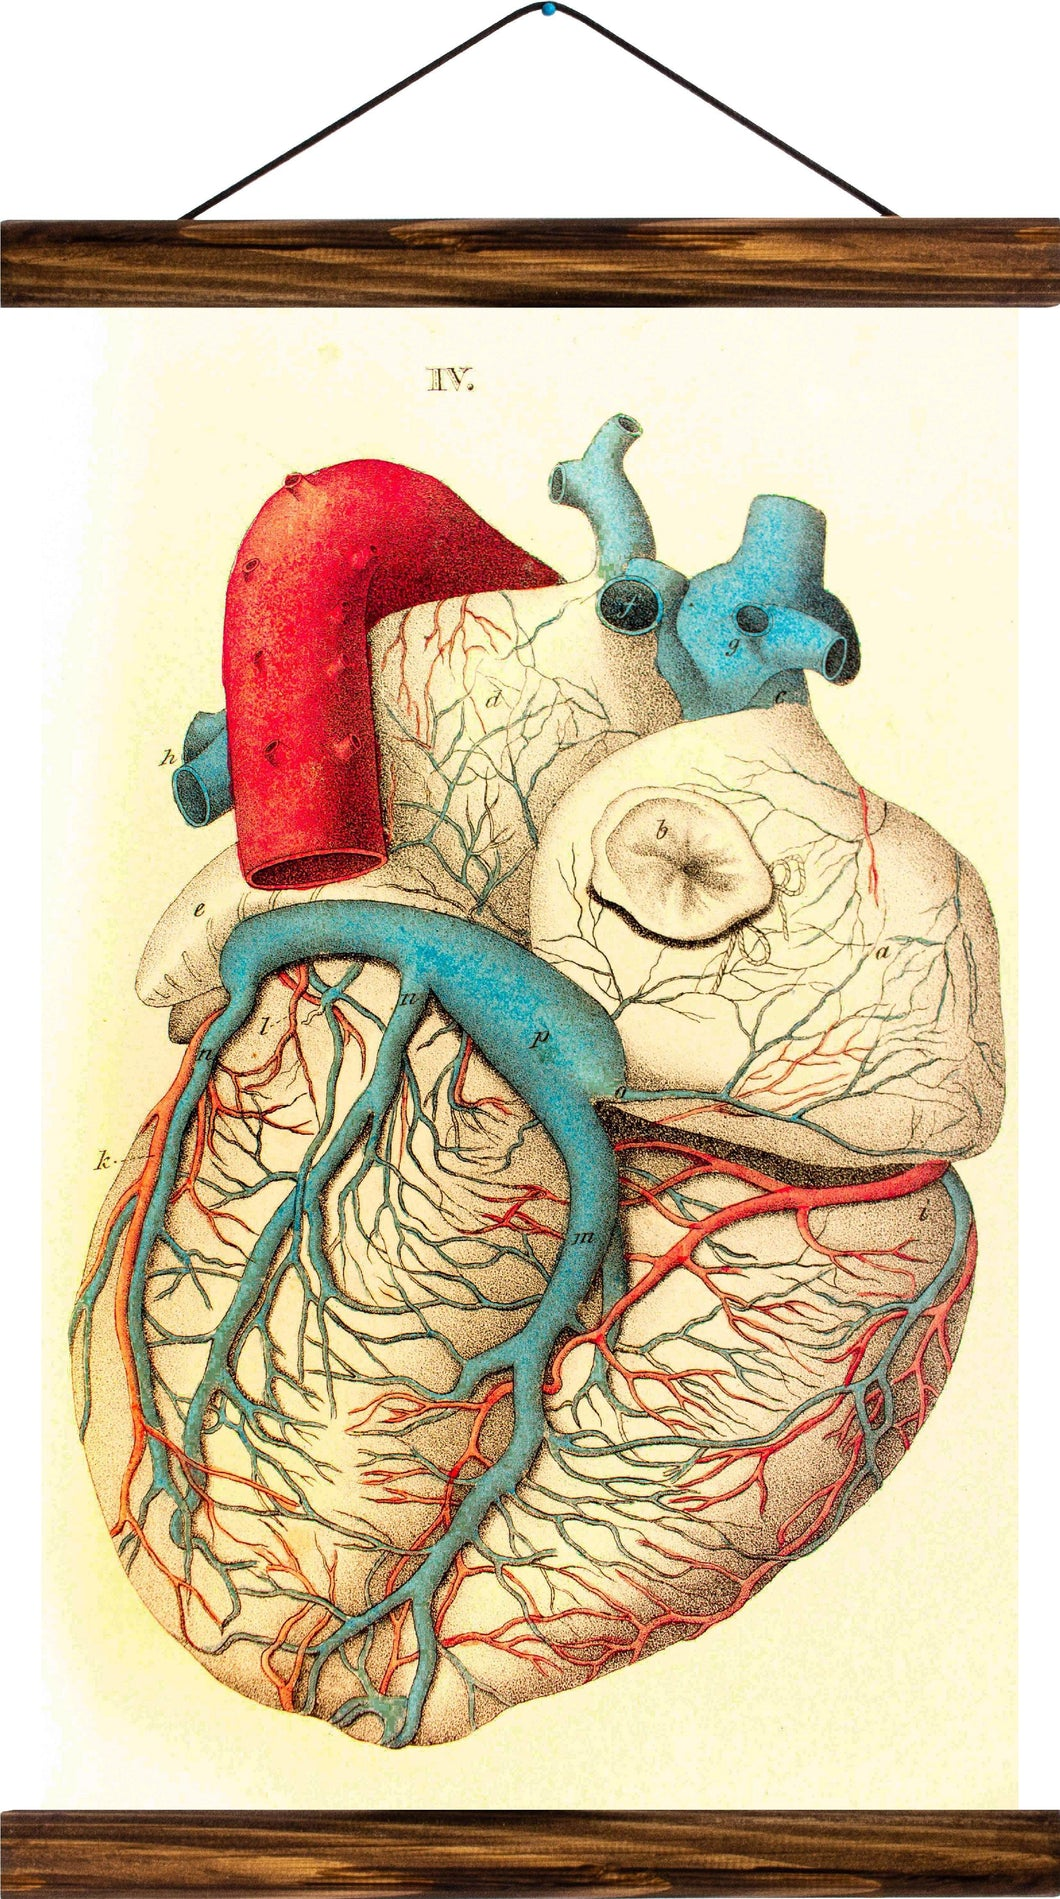 Human heart, reprint on linen